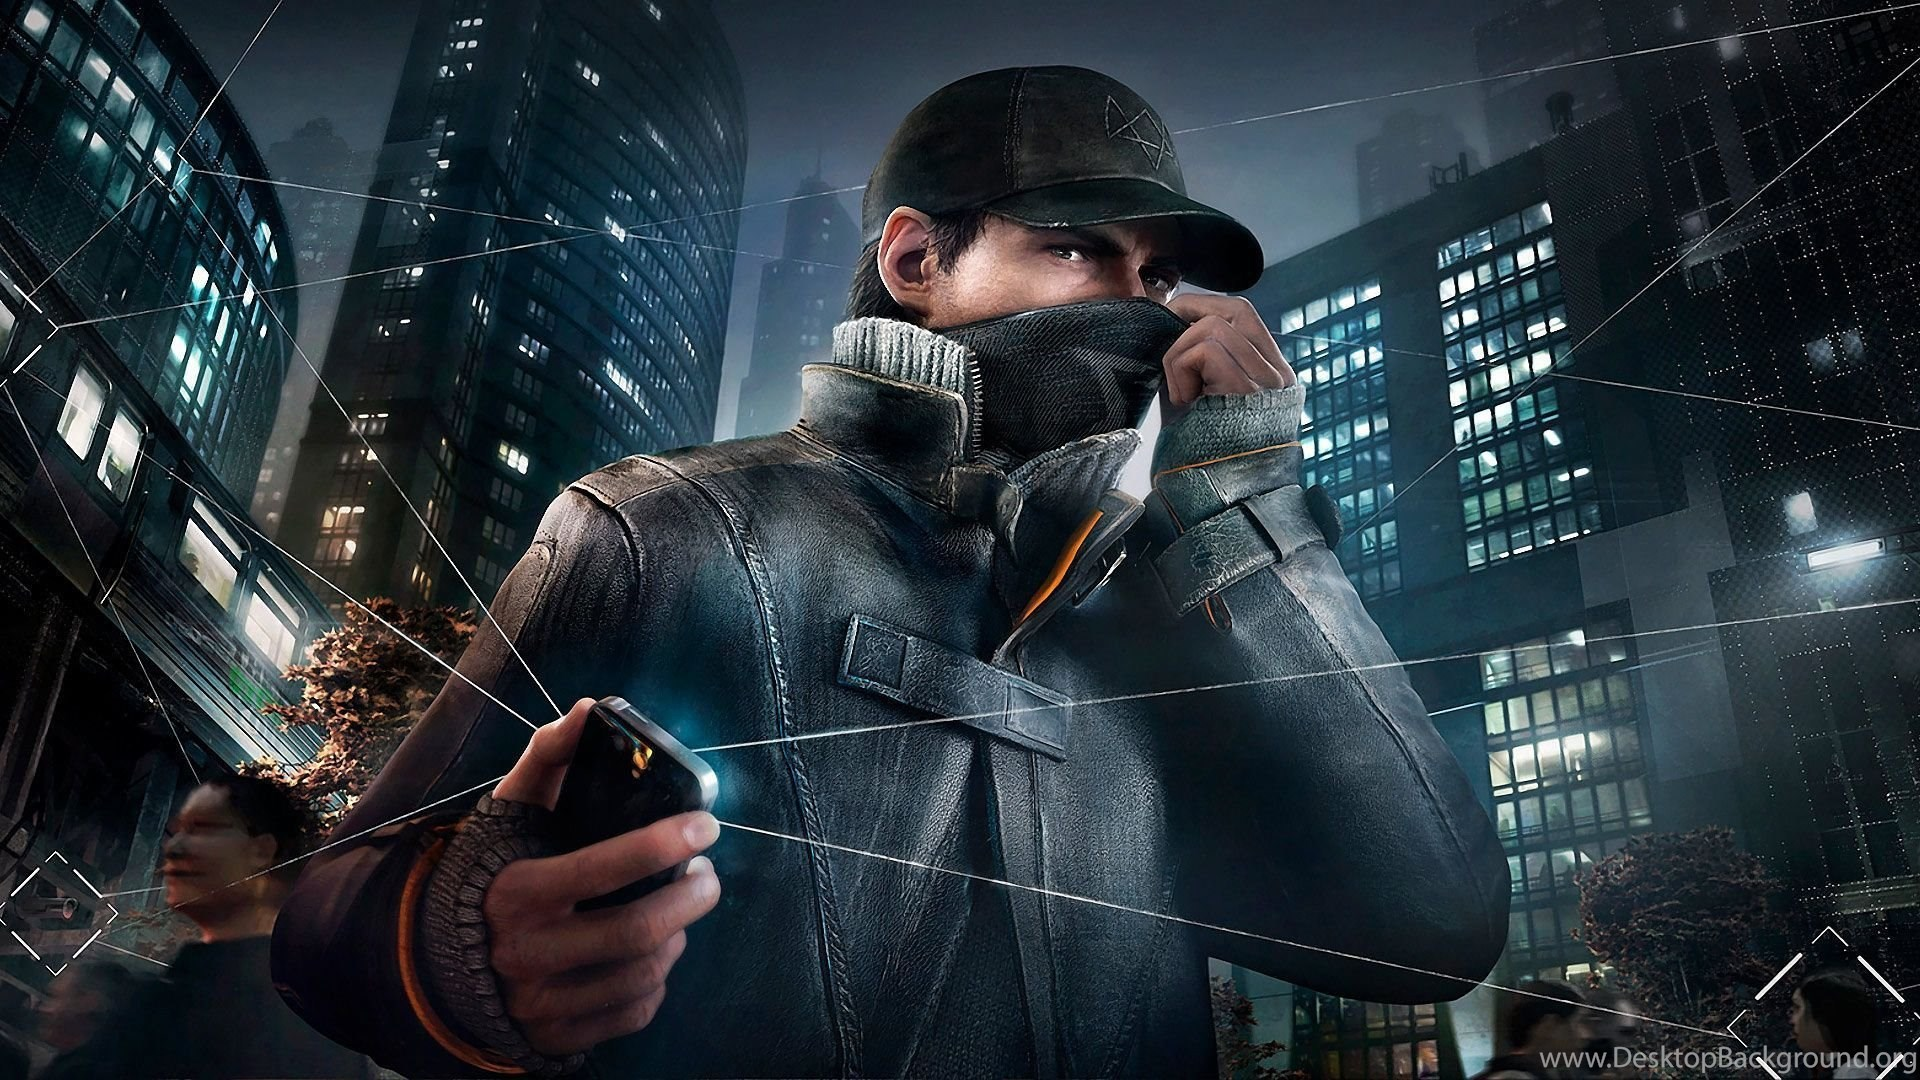 Watch Dogs Wallpapers Ps4 Games Full Hd Hd Wallpapers Desktop Background